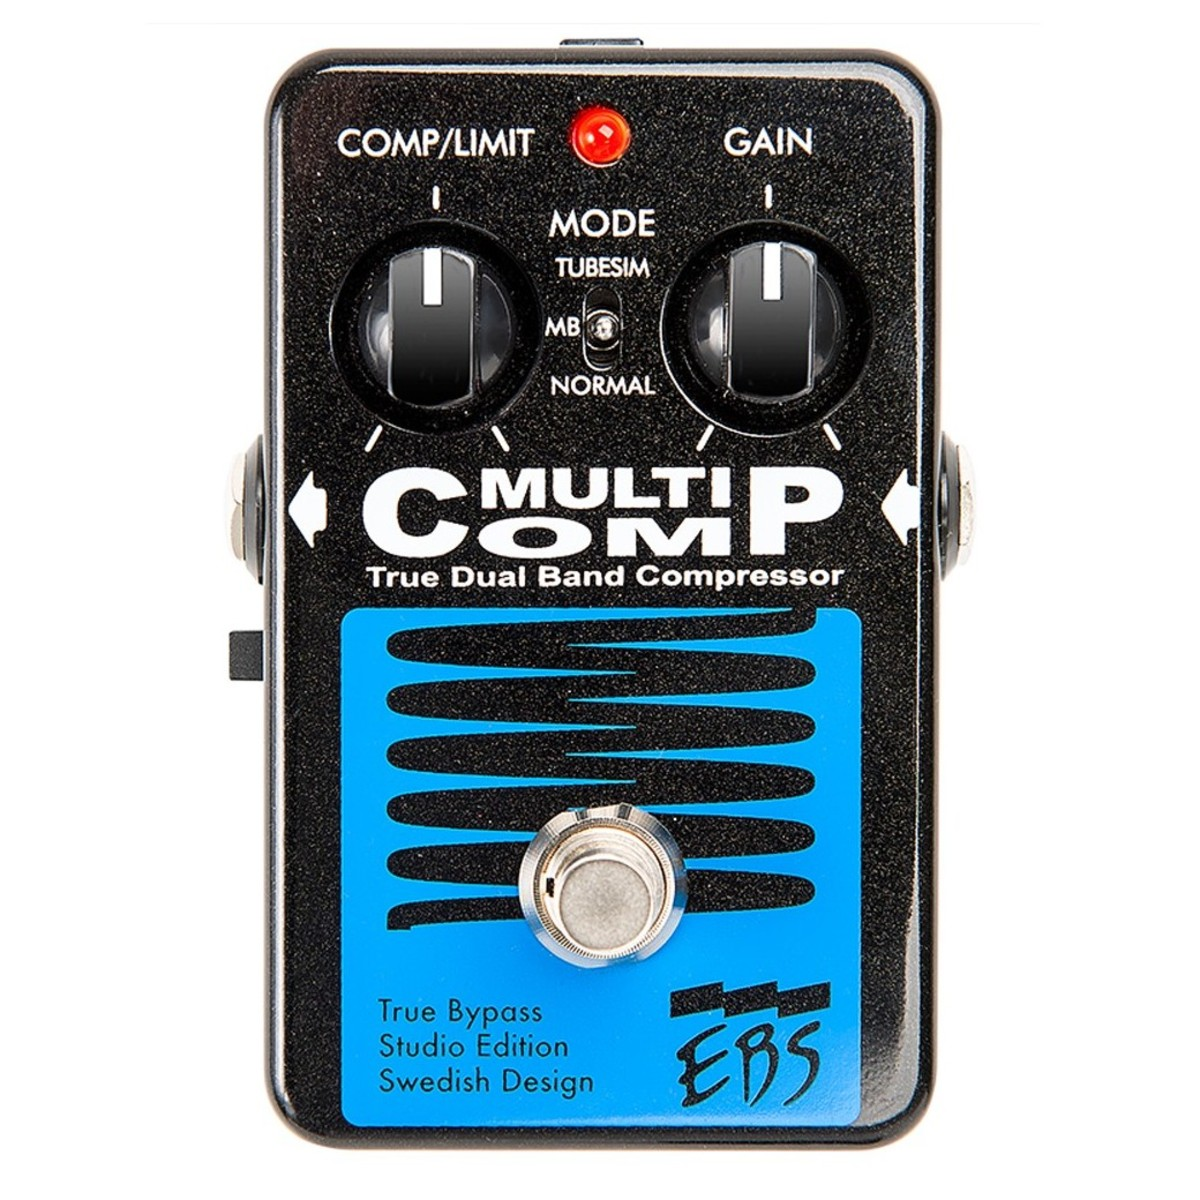 Ebs Multicomp Studio Edition Compressor Pedal At Gear4music Overvoltage Protected Control